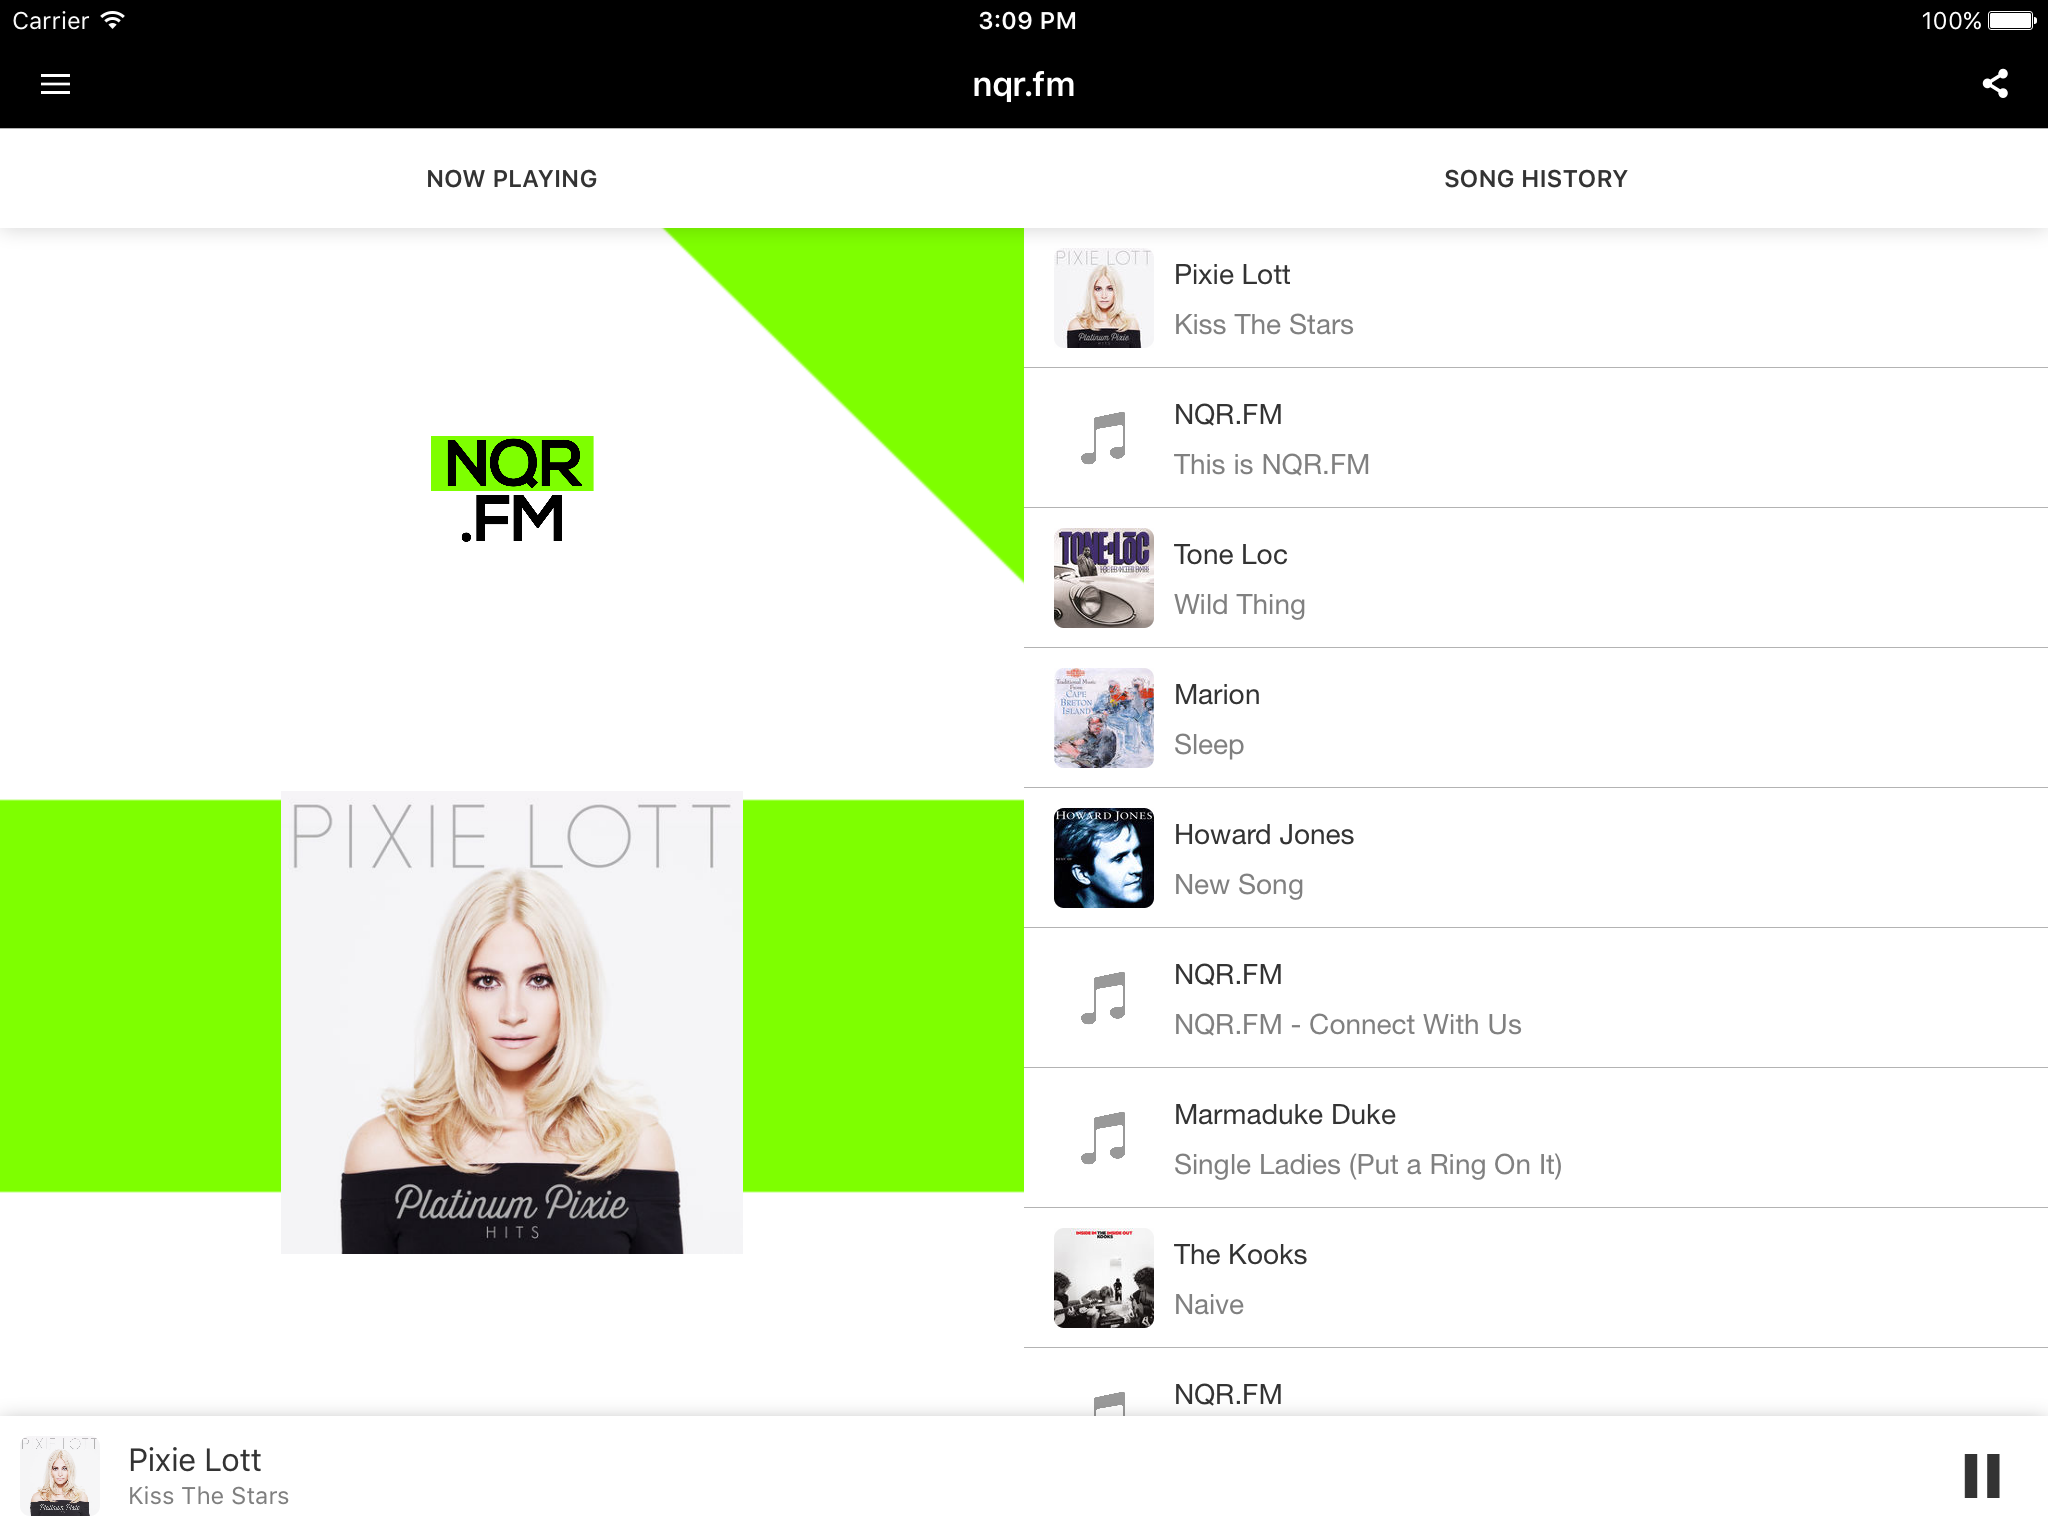 NQR.FM iOS Now Playing Tablet